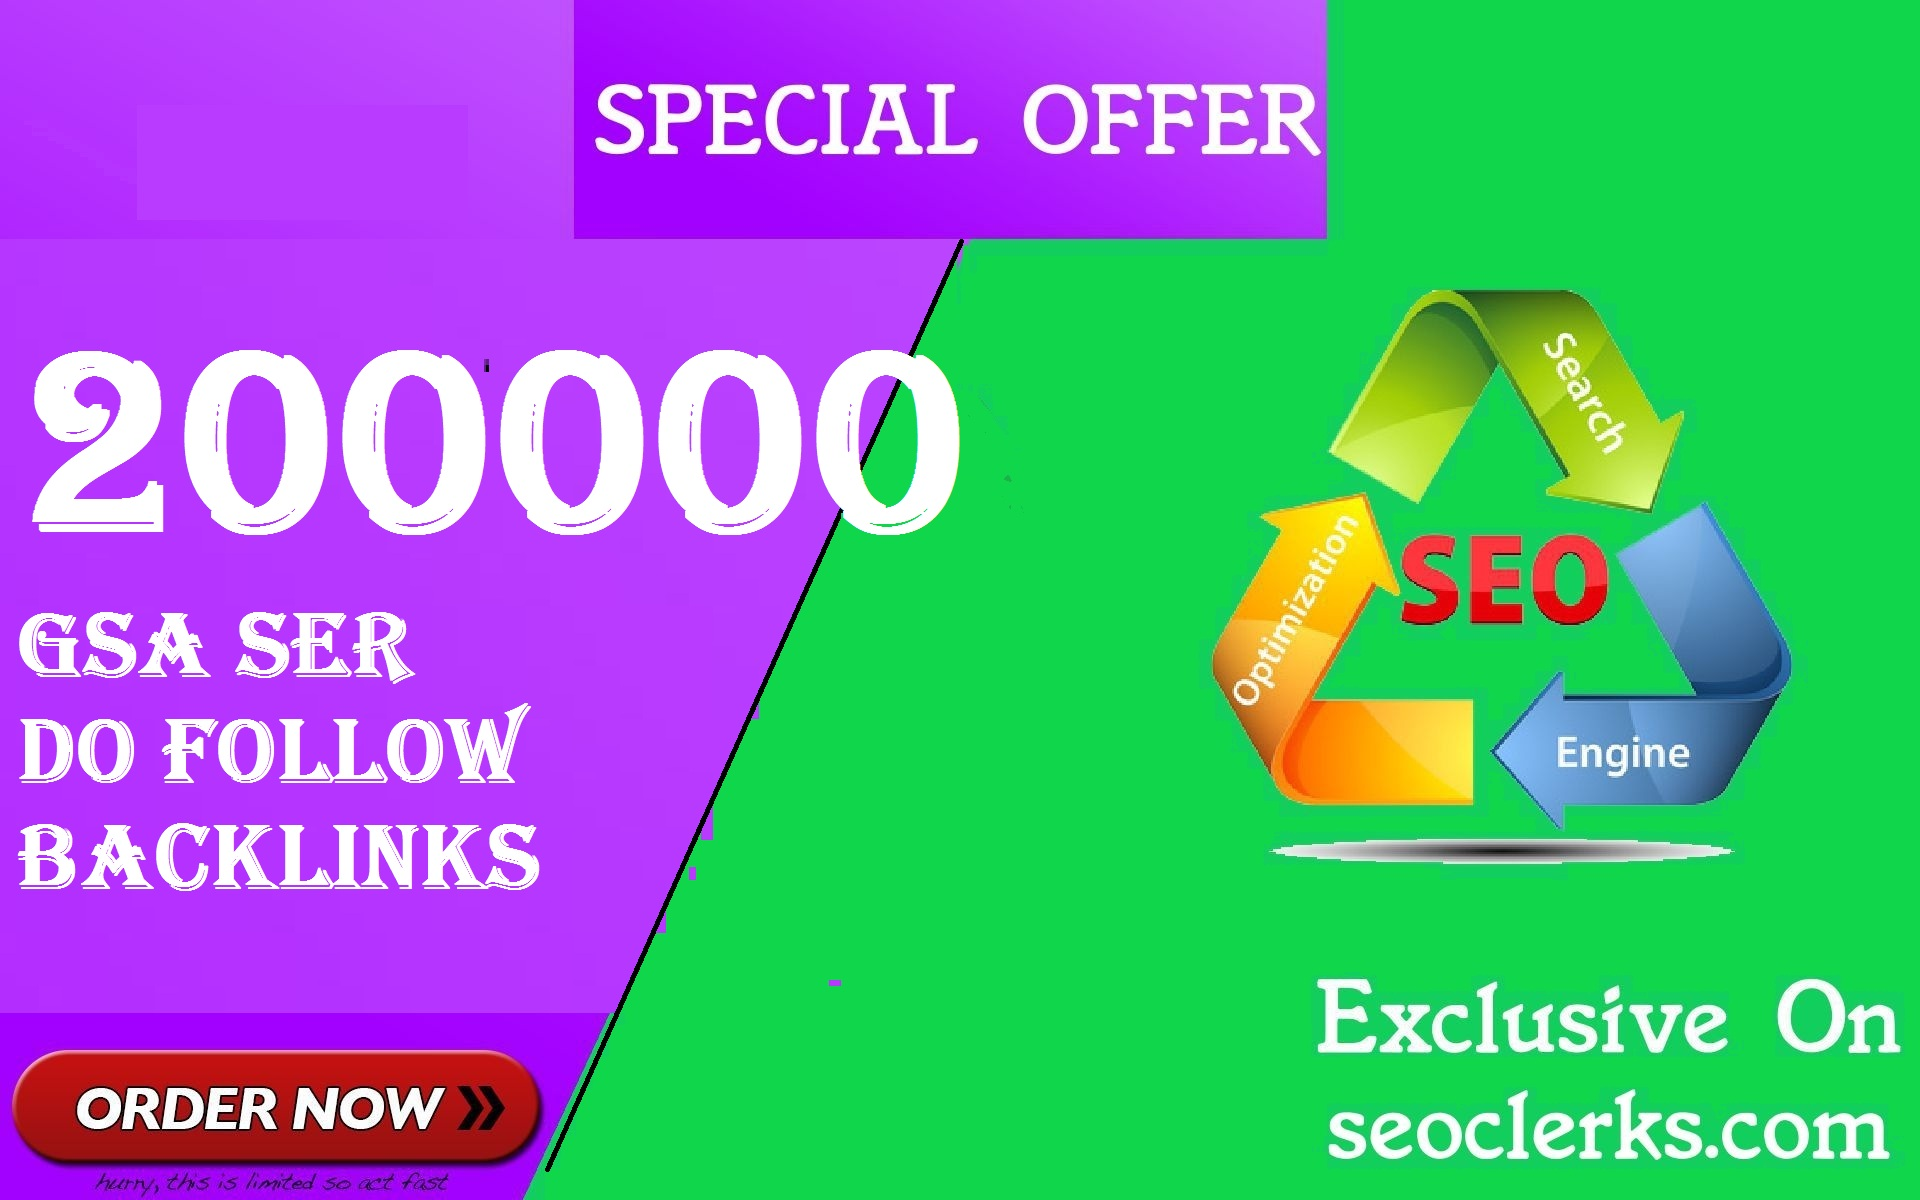 Provide-GSA-SER-4000-High-Athourity-Da-Pa-Contextual-Backlinks